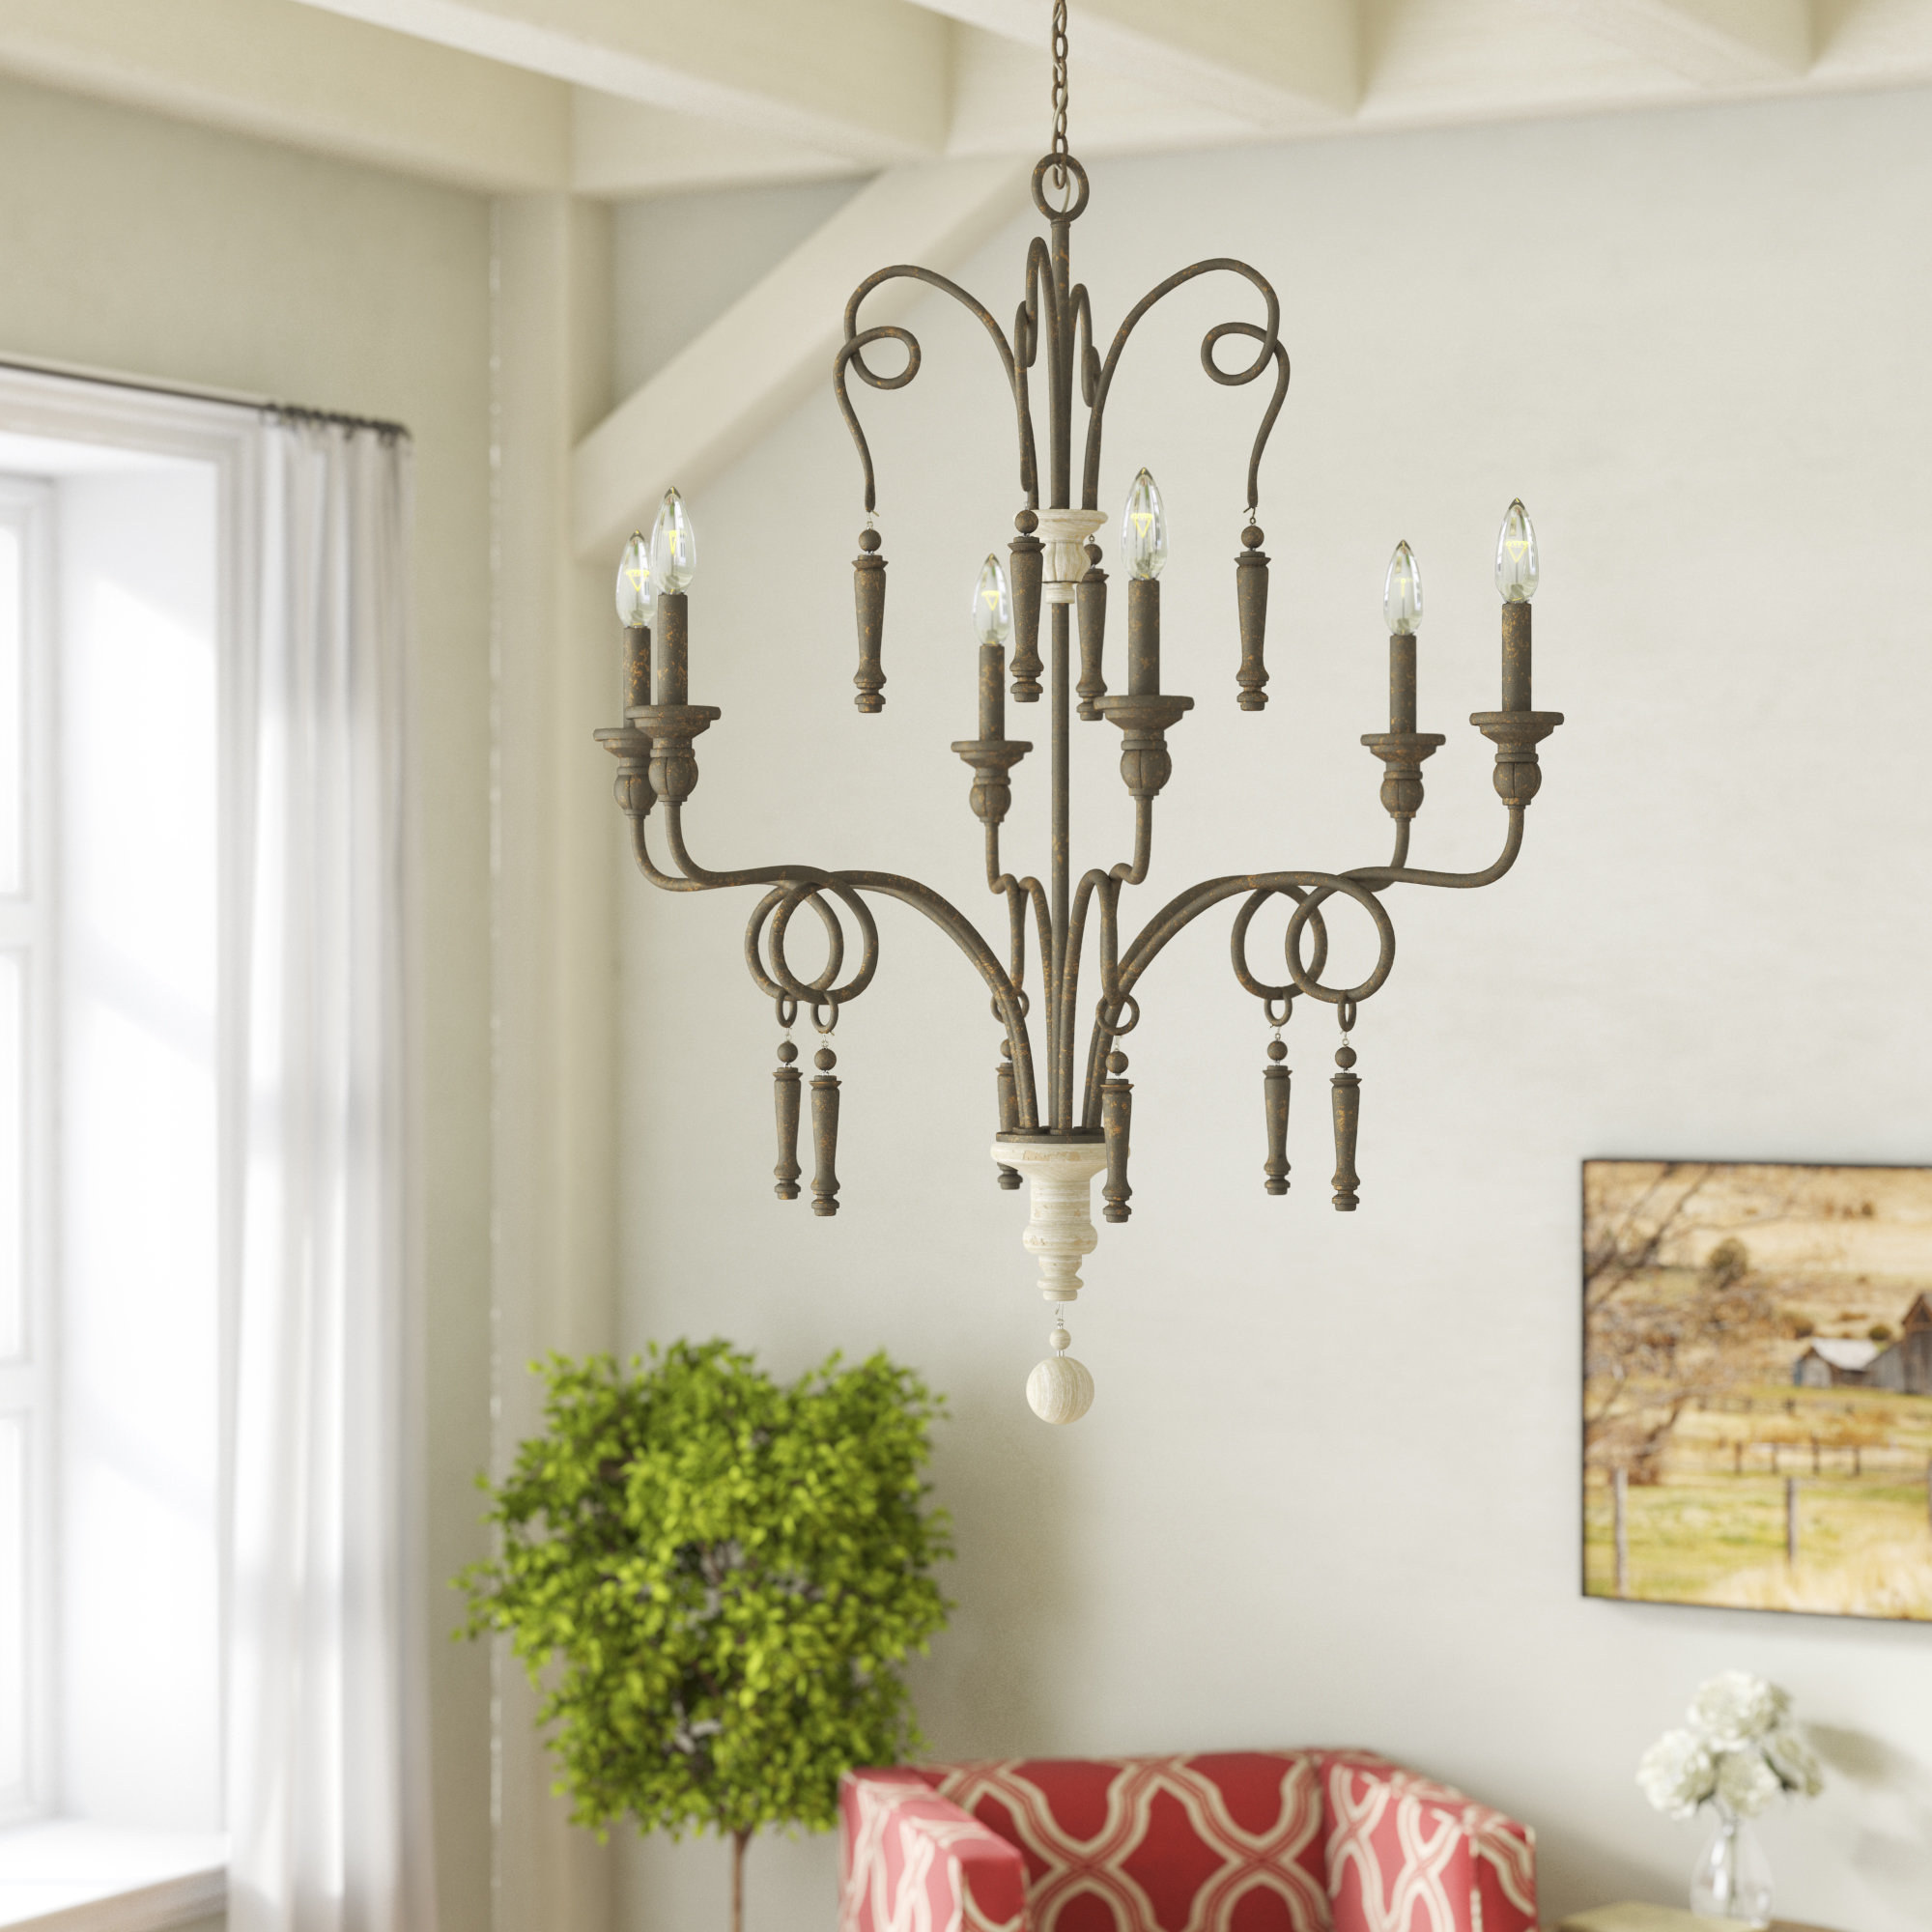 Bouchette 6 Light Candle Style Chandelier With Bouchette Traditional 6 Light Candle Style Chandeliers (View 4 of 30)